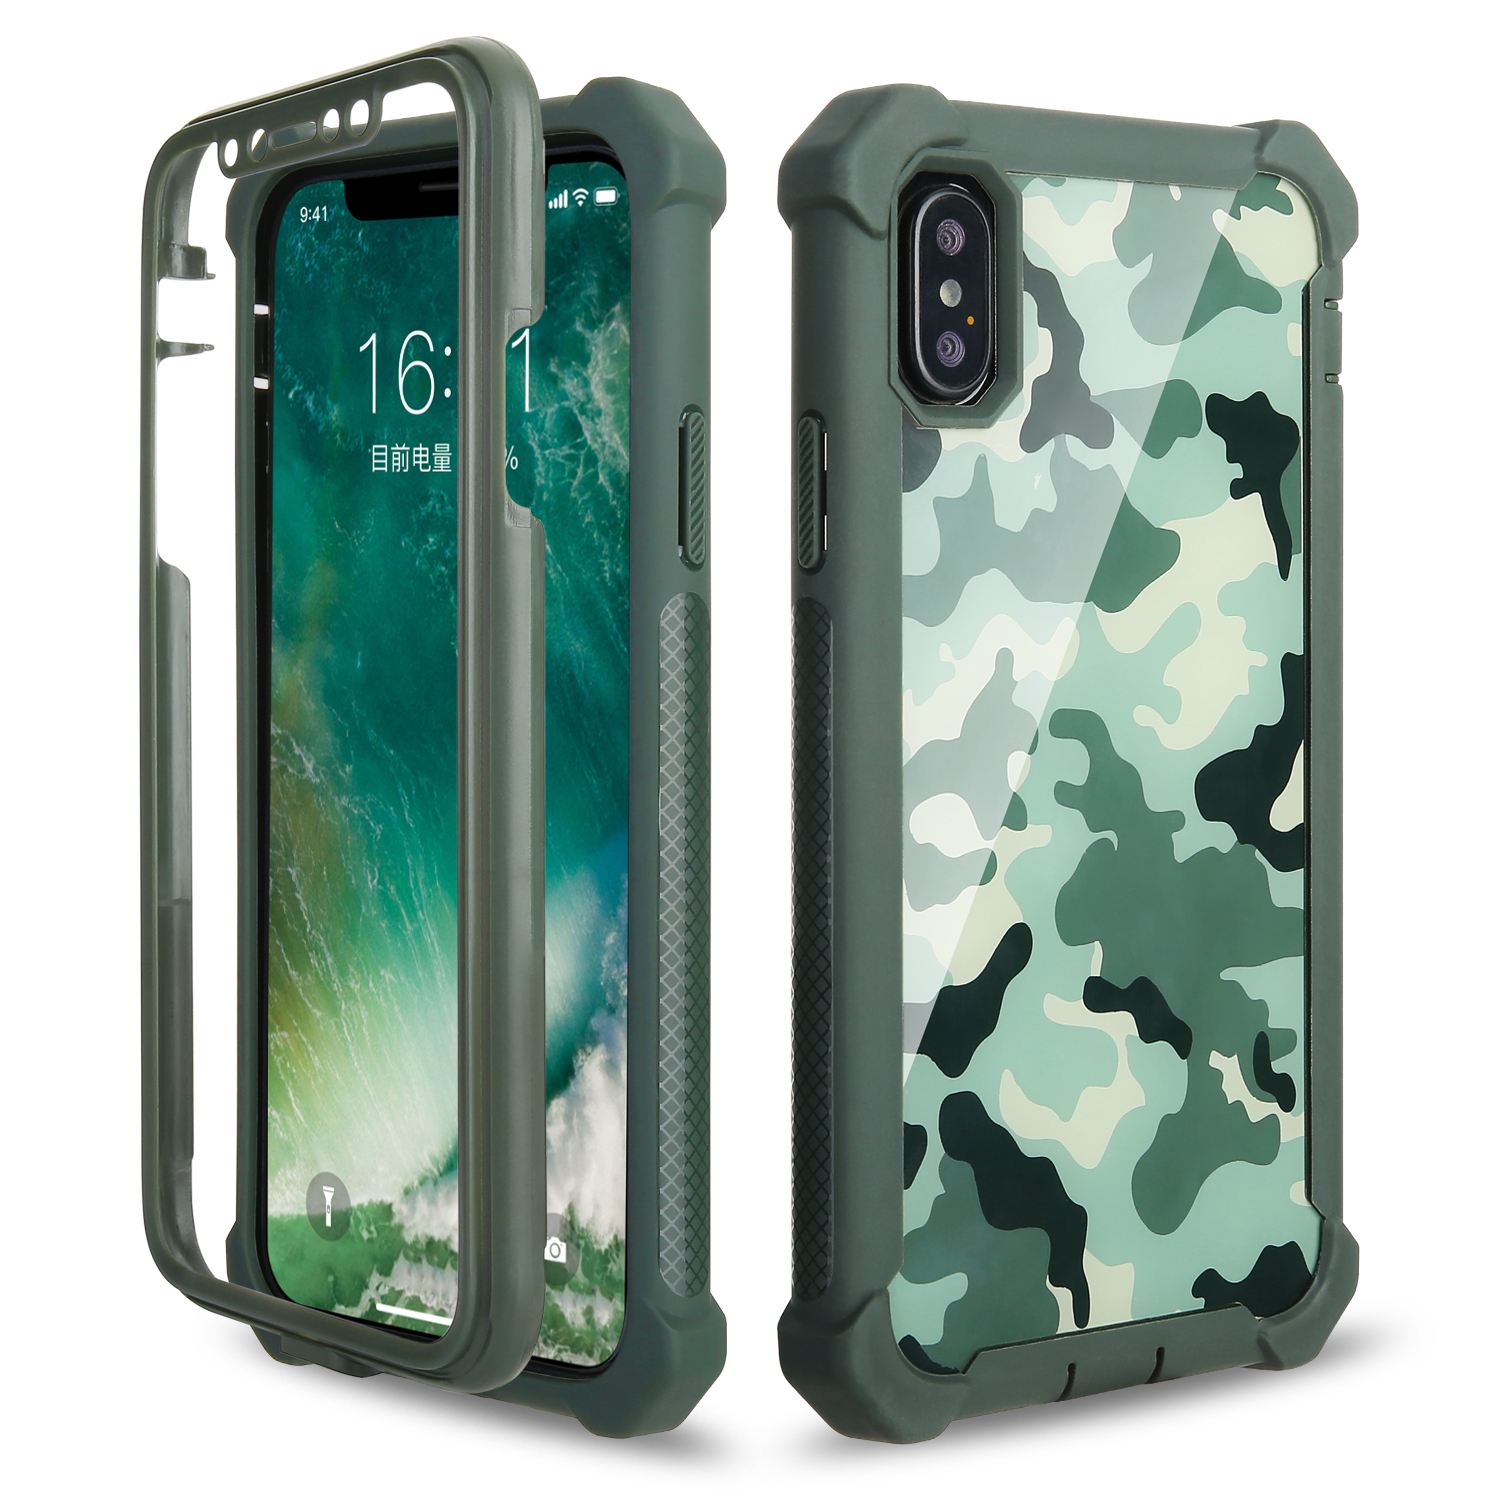 AICOO 3 in1 Translucent Solid Shockproof TPU PC Anti-fall Defender Camouflage Case Phone Cover For IPhone Samsung Note <strong>10</strong> <strong>Pro</strong>